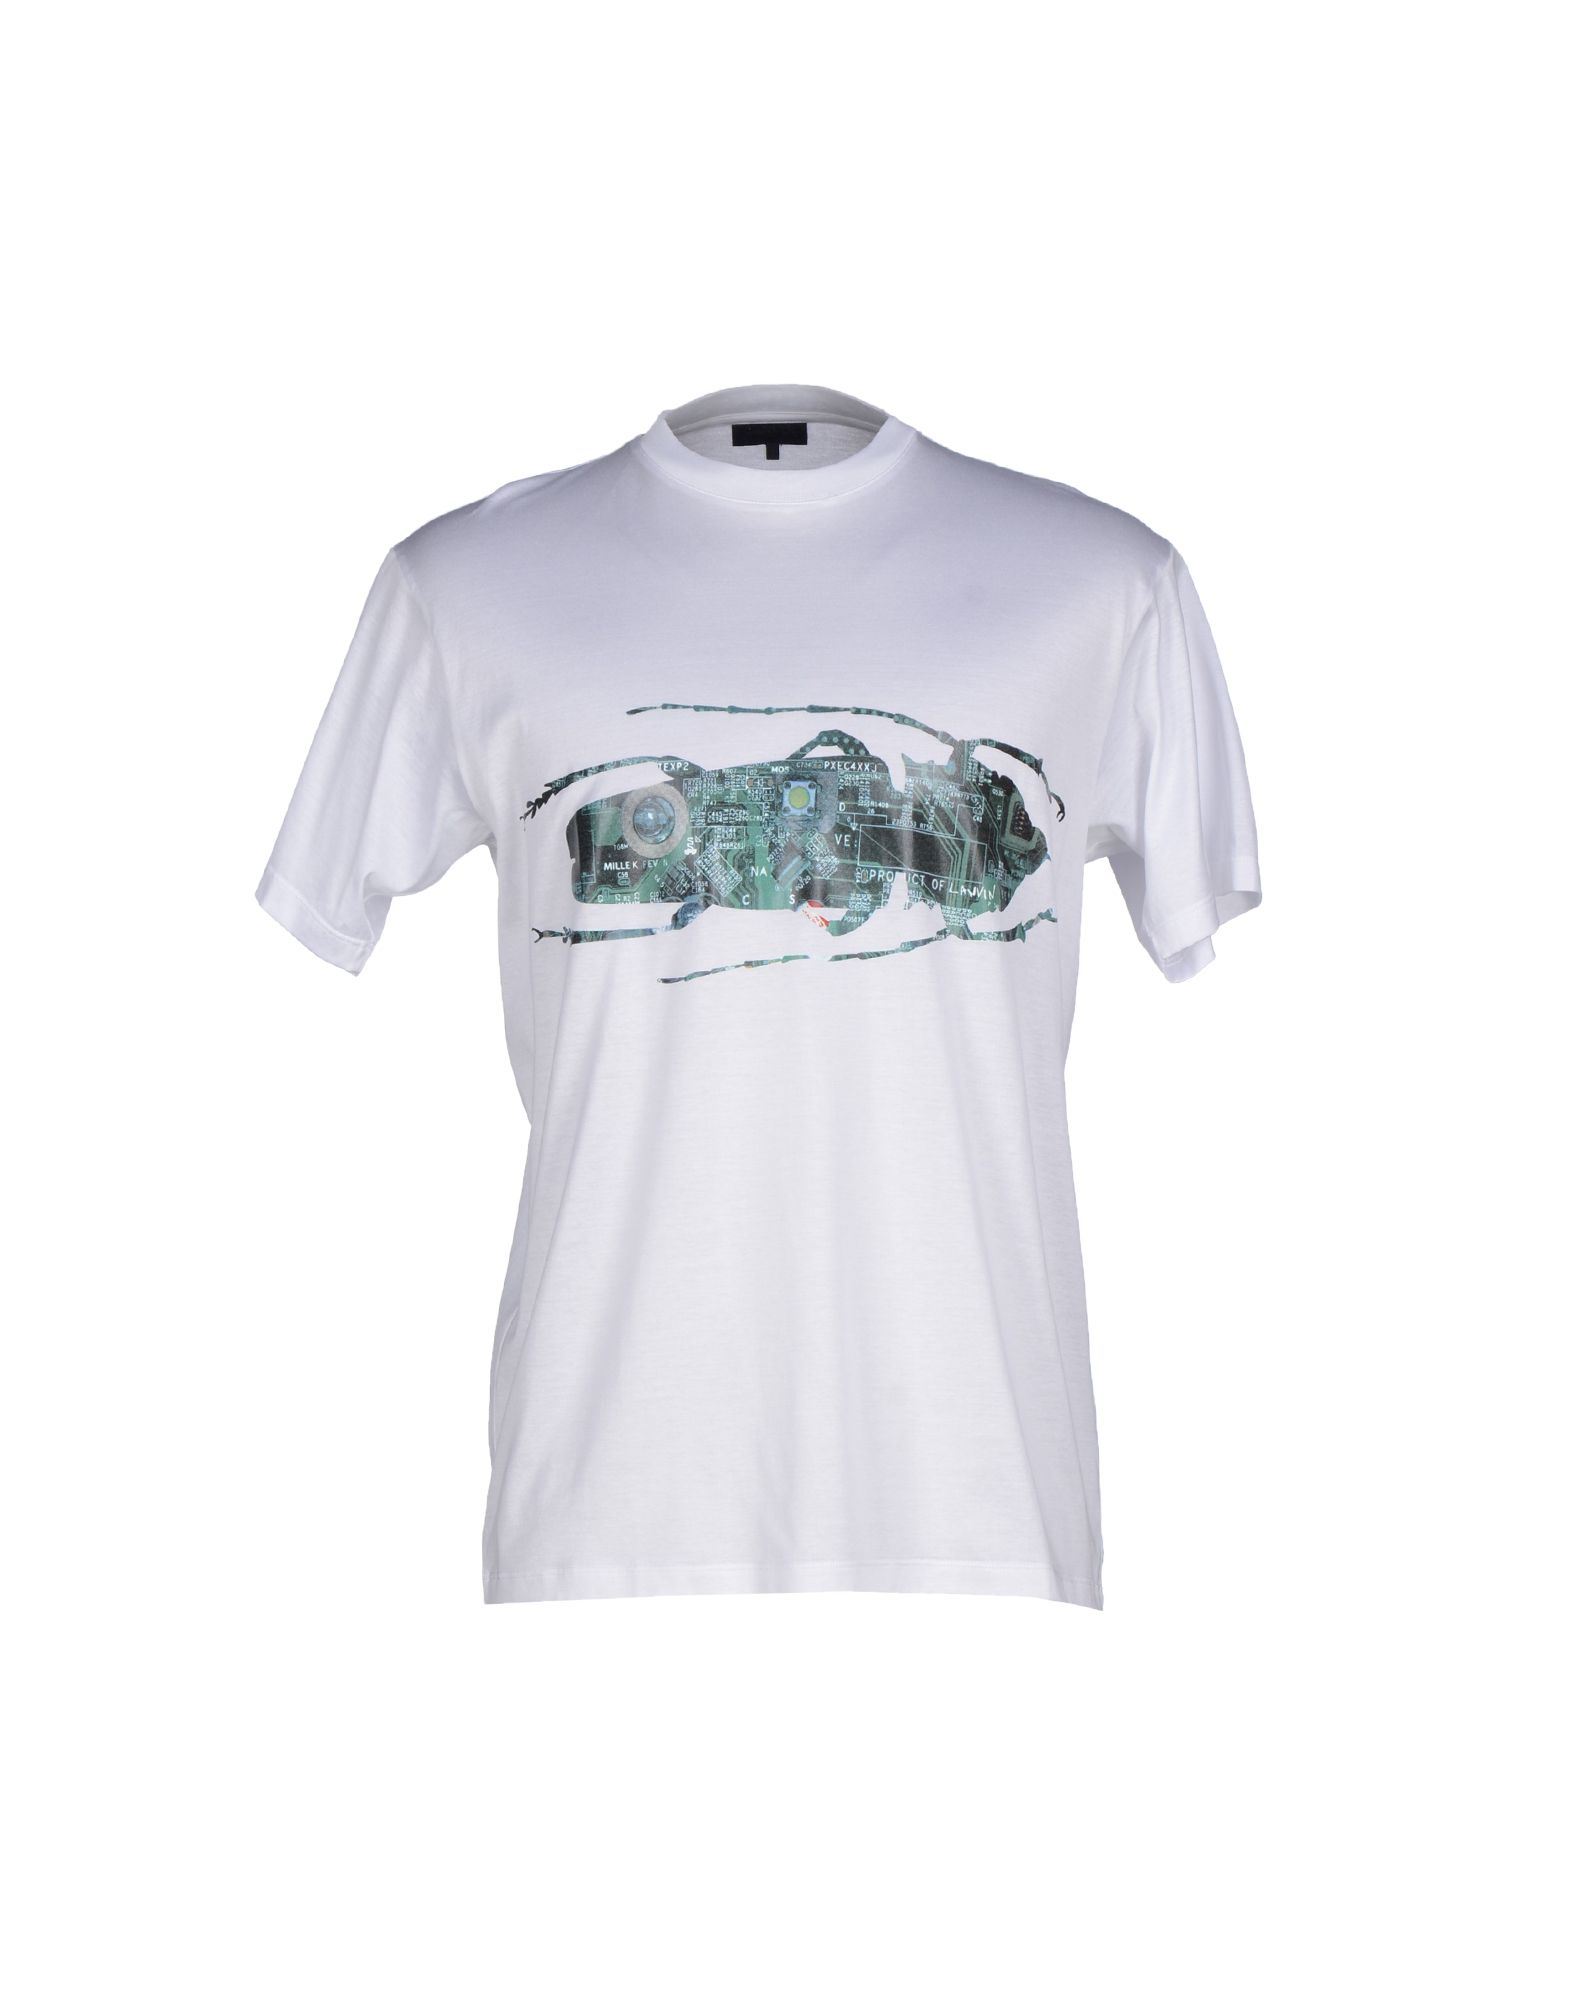 Buy Lanvin Classic Shirt Cotton % RMSISALS Mens Clothing Shirts VBSKQTC. Mens Clothing - Lanvin Classic Shirt Cotton % RMSISALS Mens Clothing Shirts VBSKQTC. Founded in , Lanvin is one of the oldest French couture houses.